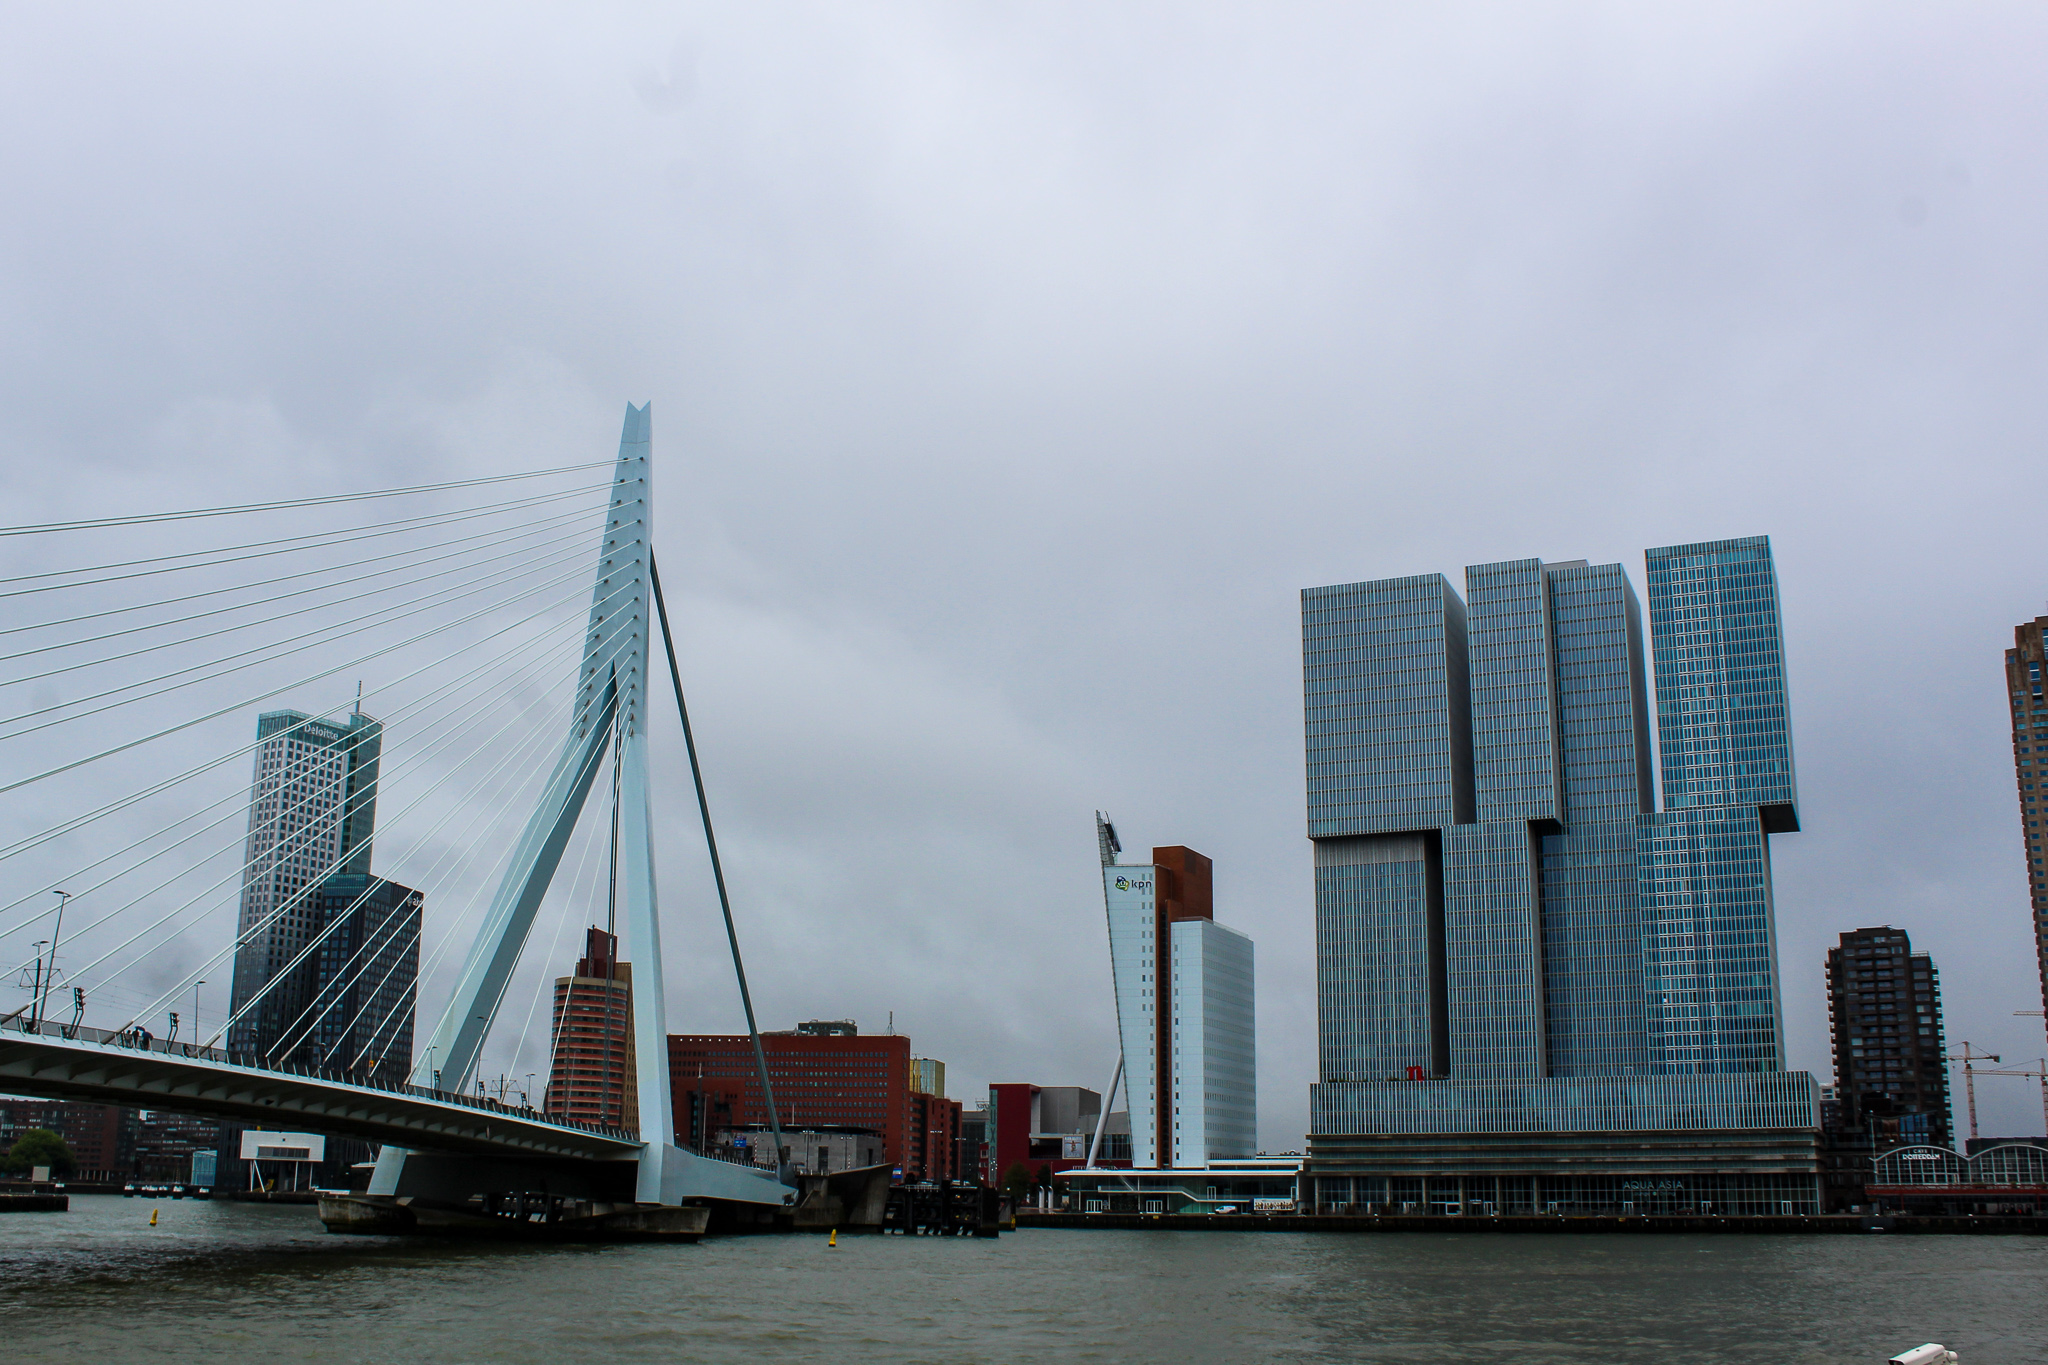 rotterdam day trip from amsterdam and see the bridge